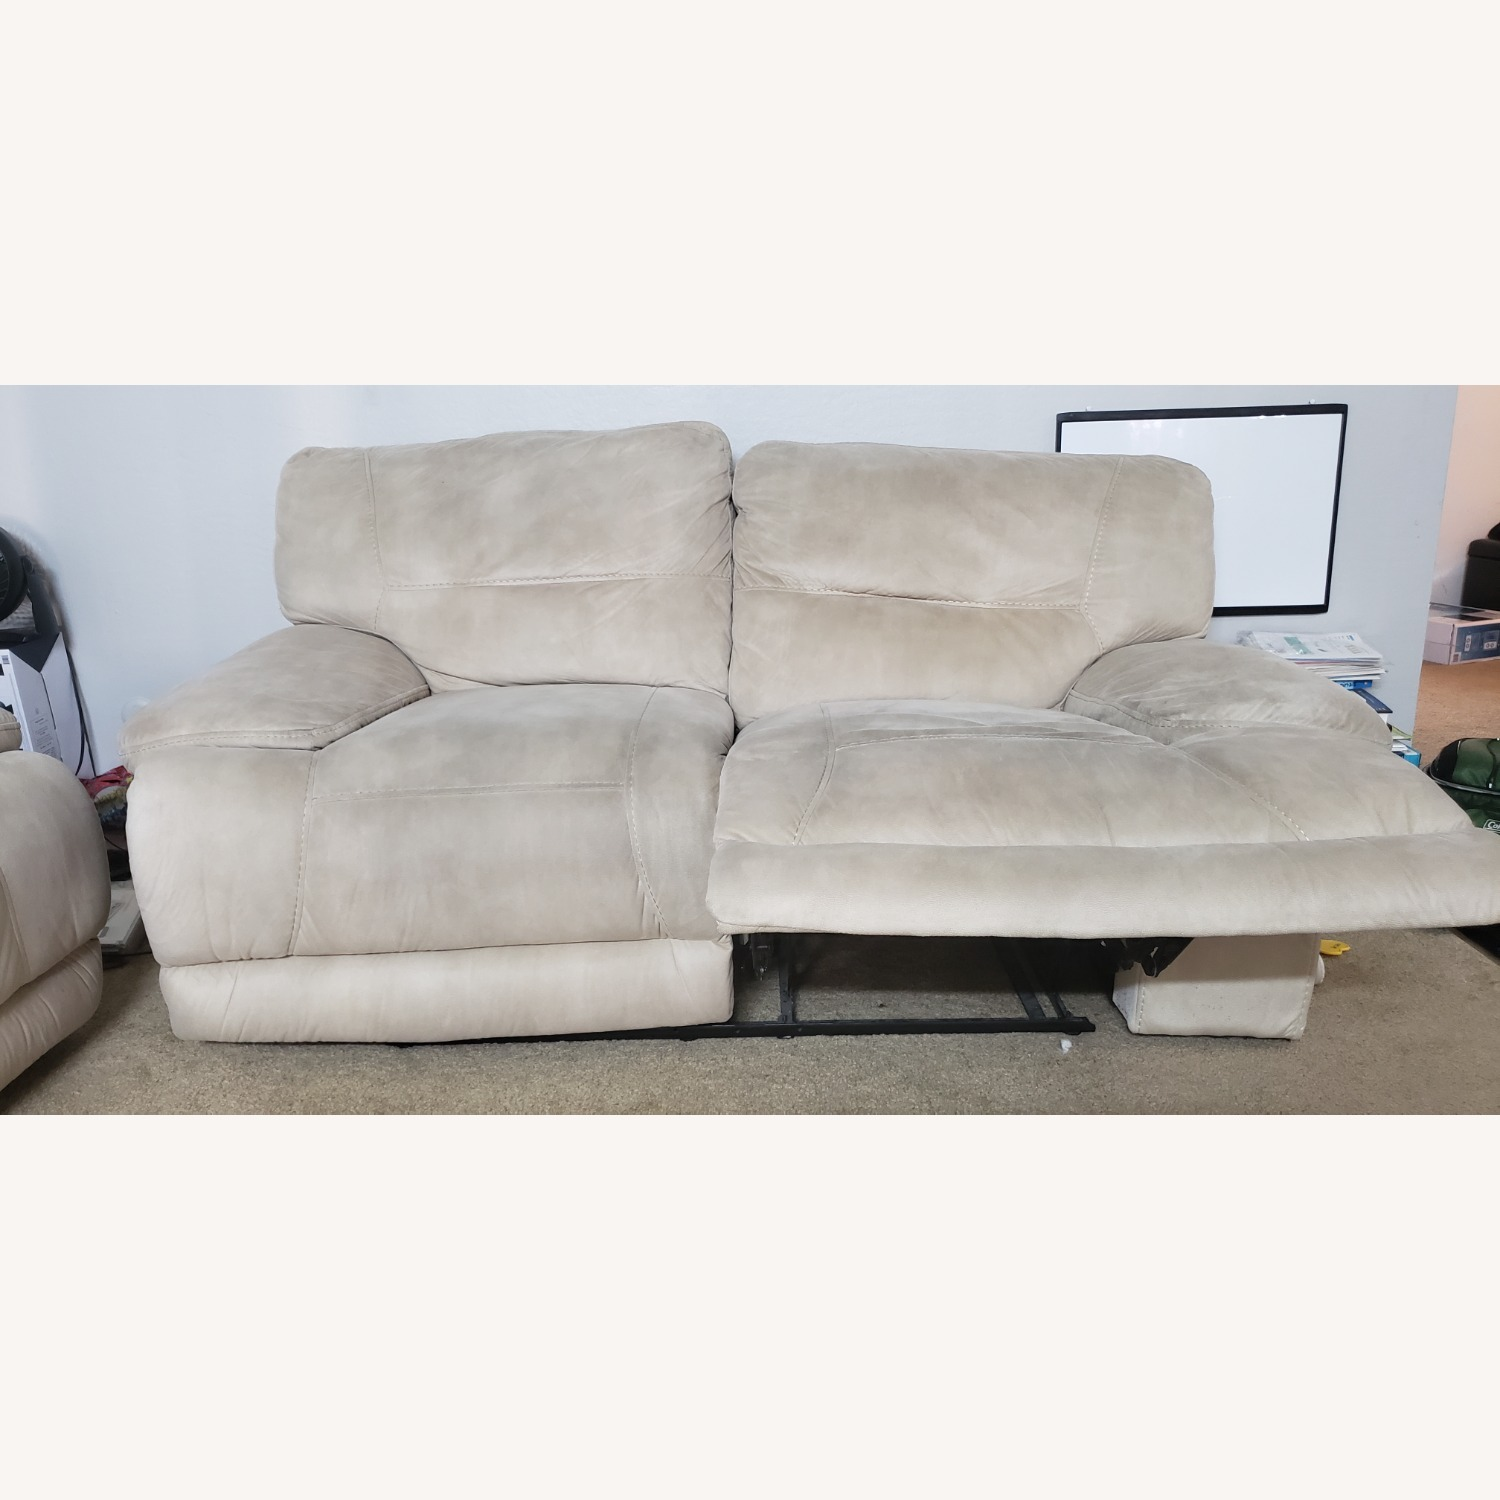 Rooms To Go Love Seat with Recliner - image-2